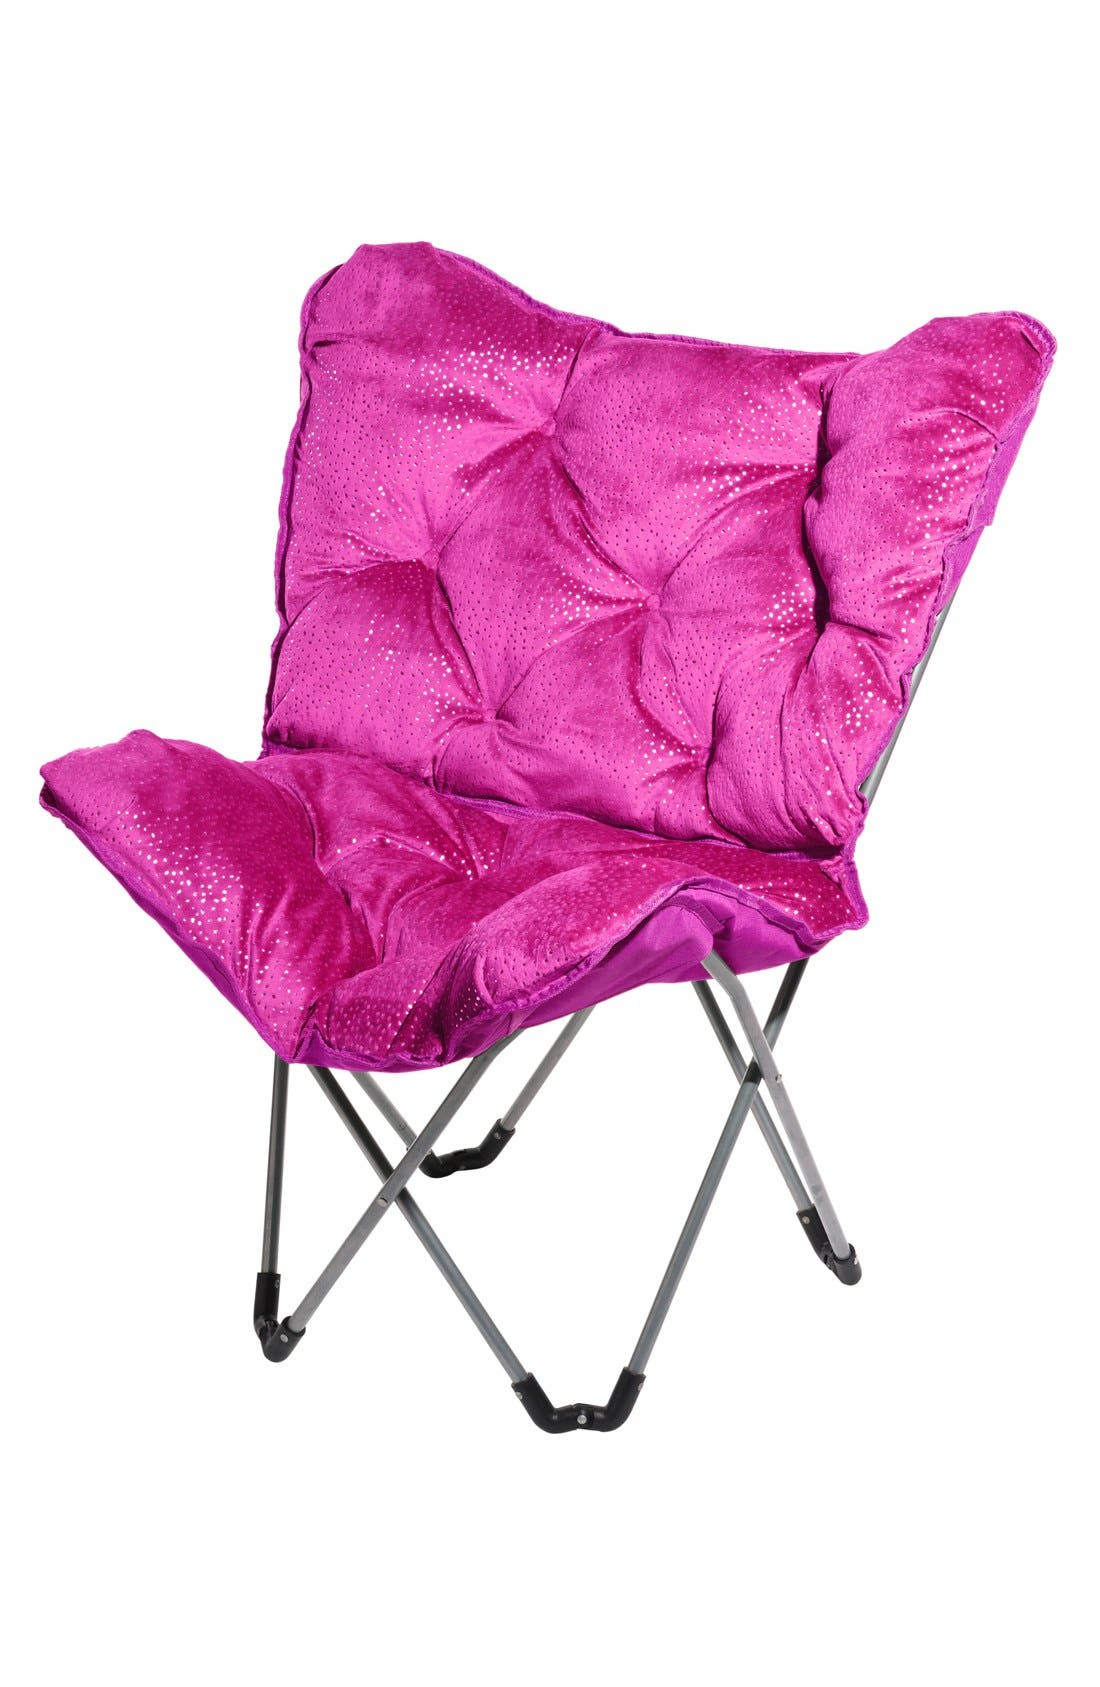 3C4G 'Sparkle' Butterfly Chair